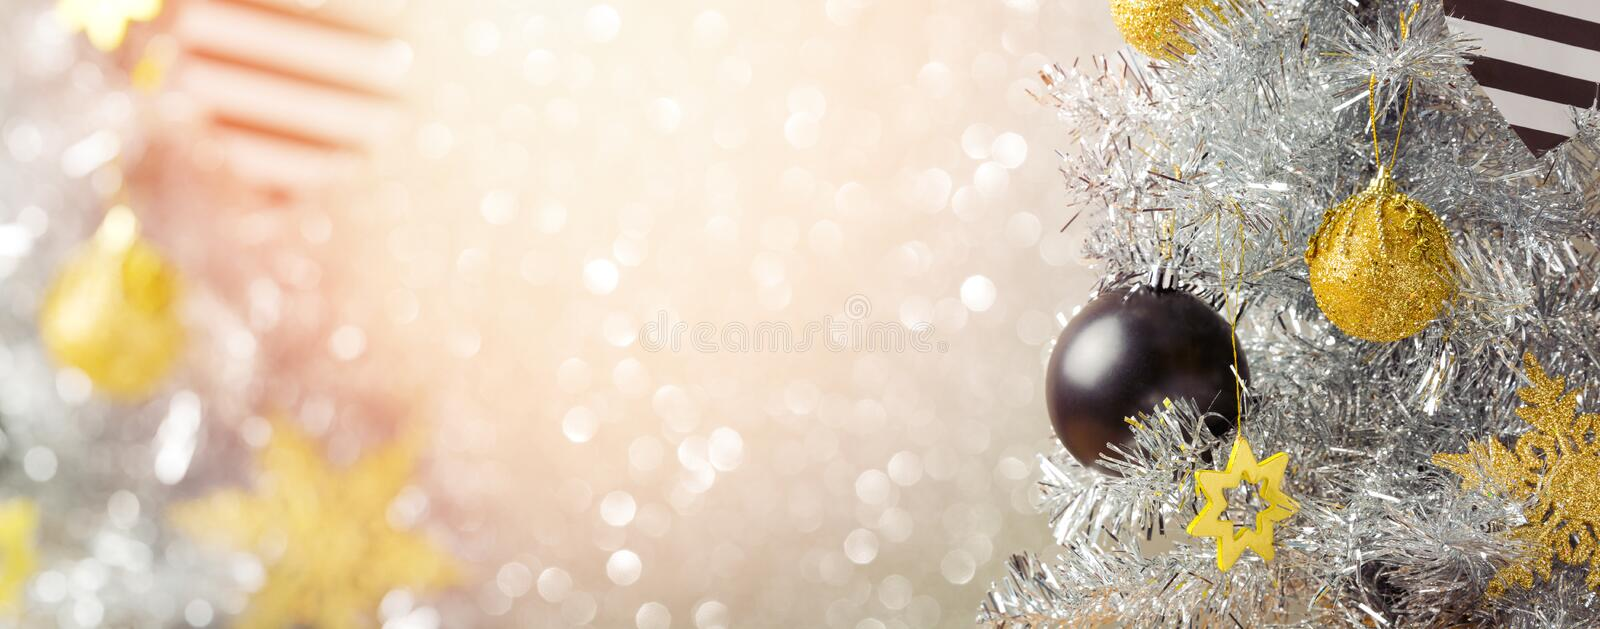 Christmas holiday banner design with Christmas tree over bokeh background stock images